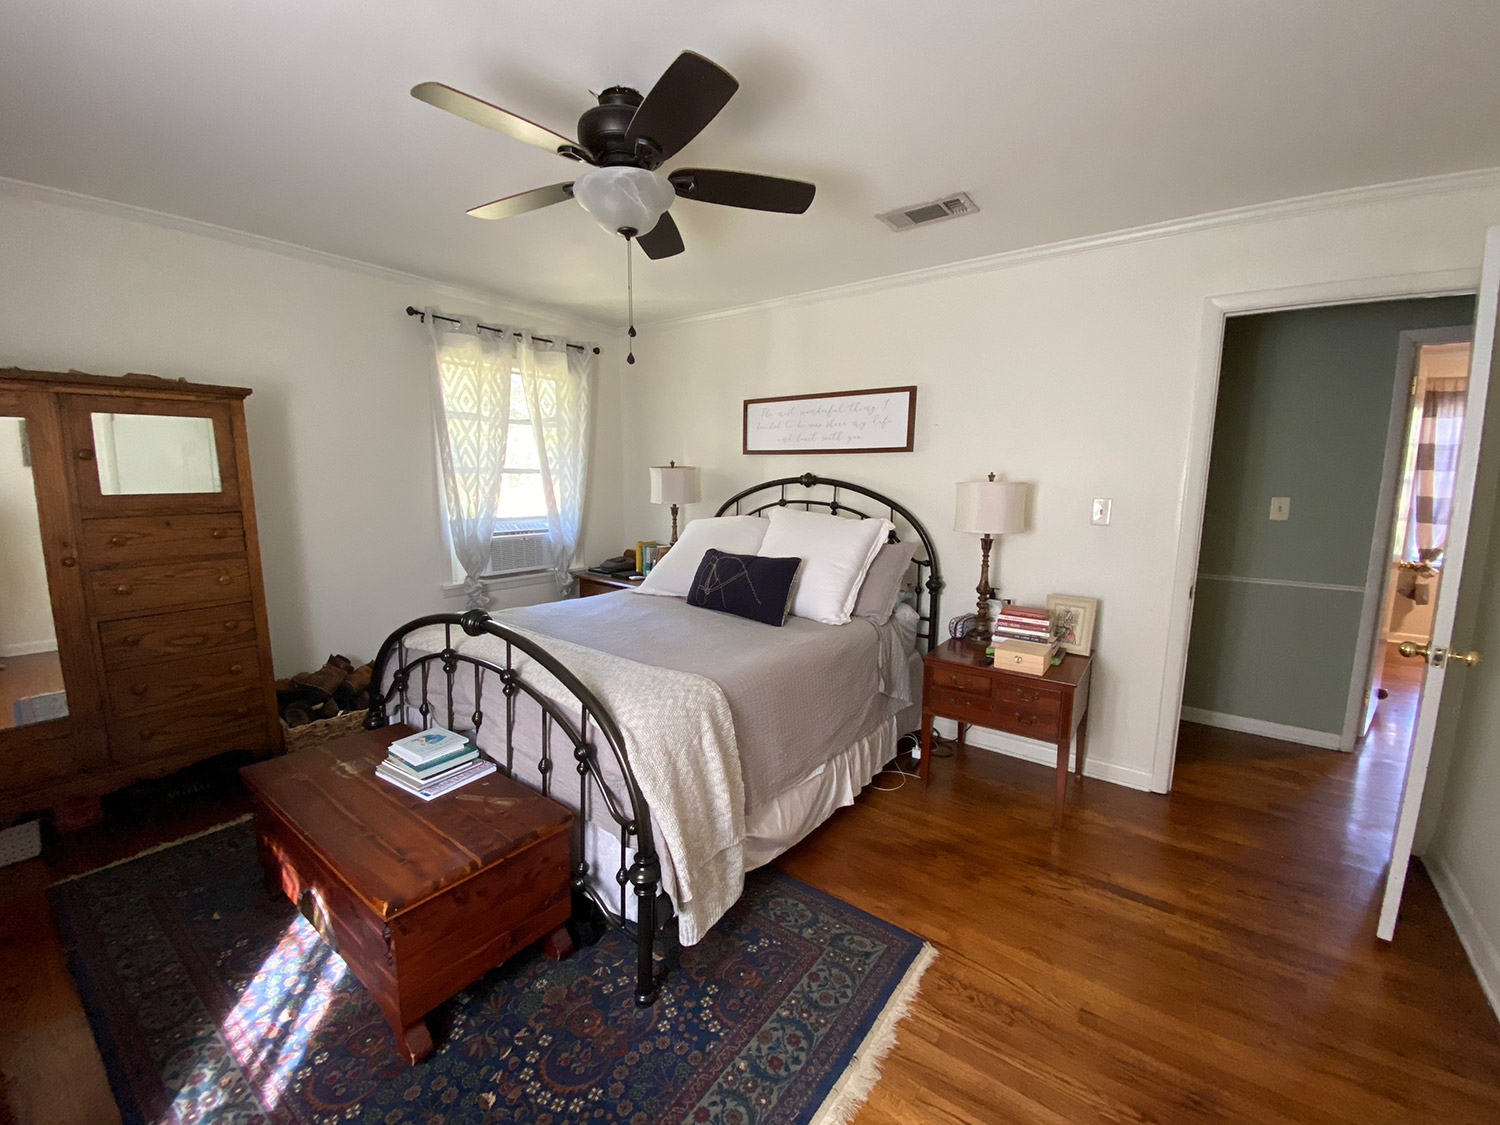 House From Hgtv Home Town For Sale Designed By Erin And Ben Napier People Com